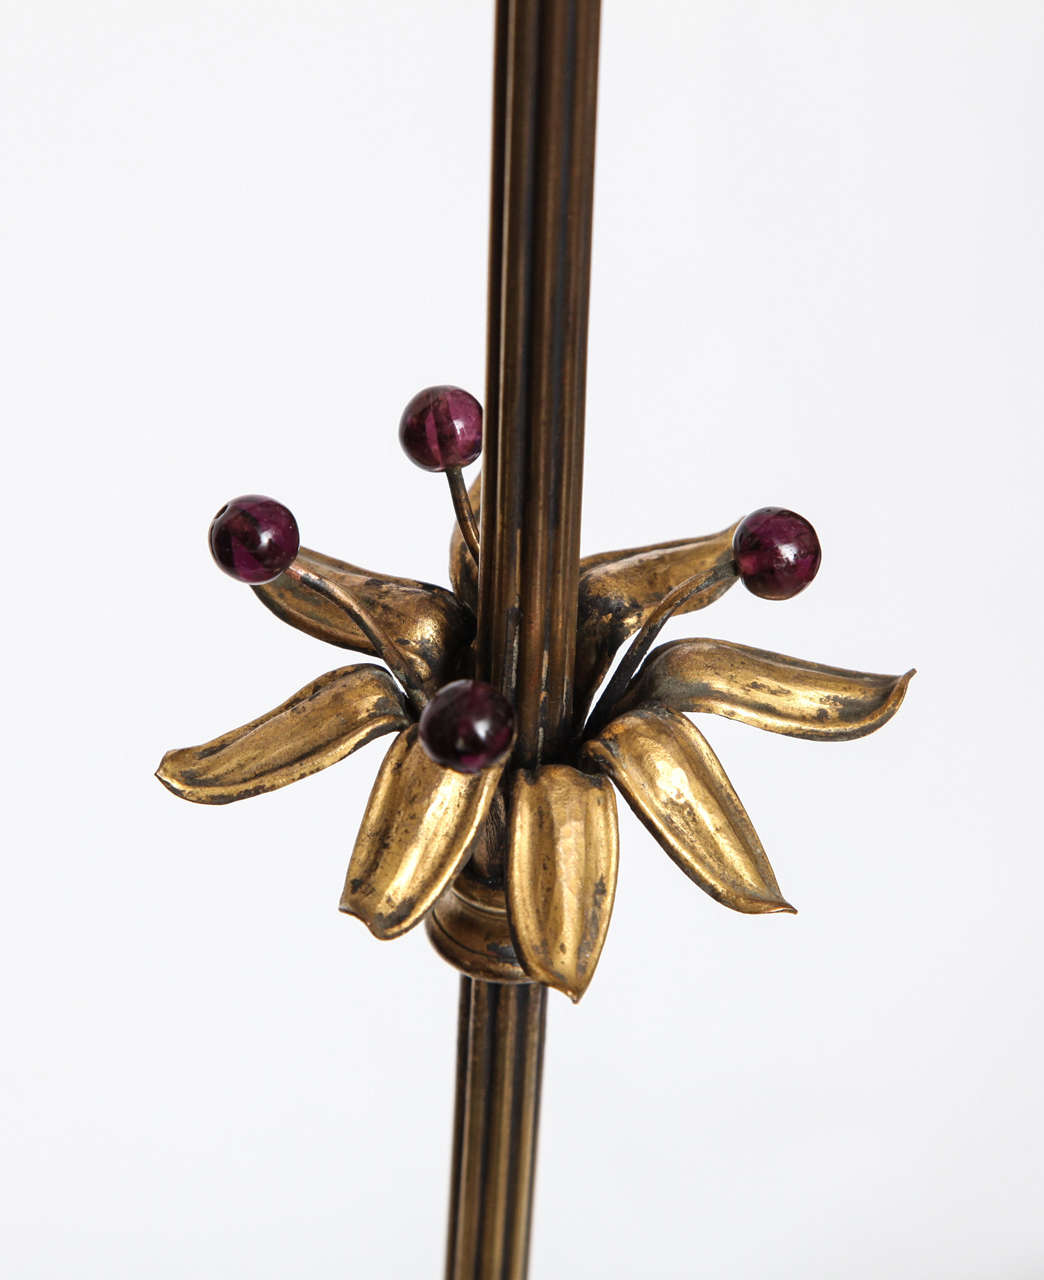 1920s Sculptural Art Deco Patinated Brass Floor Lamp In Good Condition For Sale In New York, NY